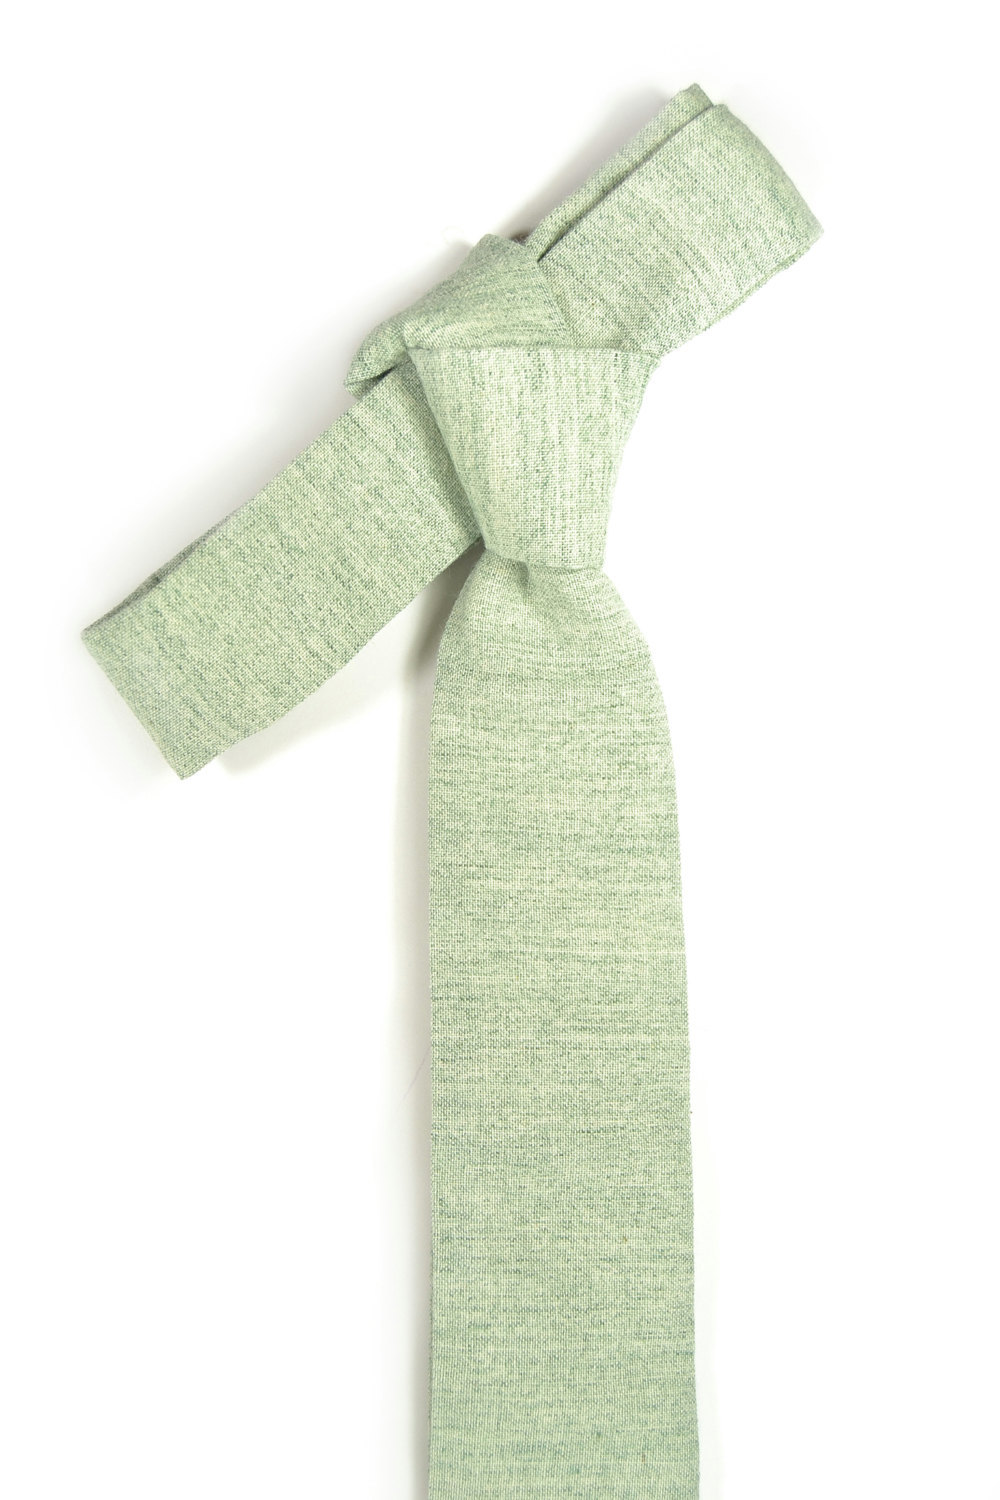 Green Wedding Mens Tie Skinny Necktie  green Japanese fabric image 5